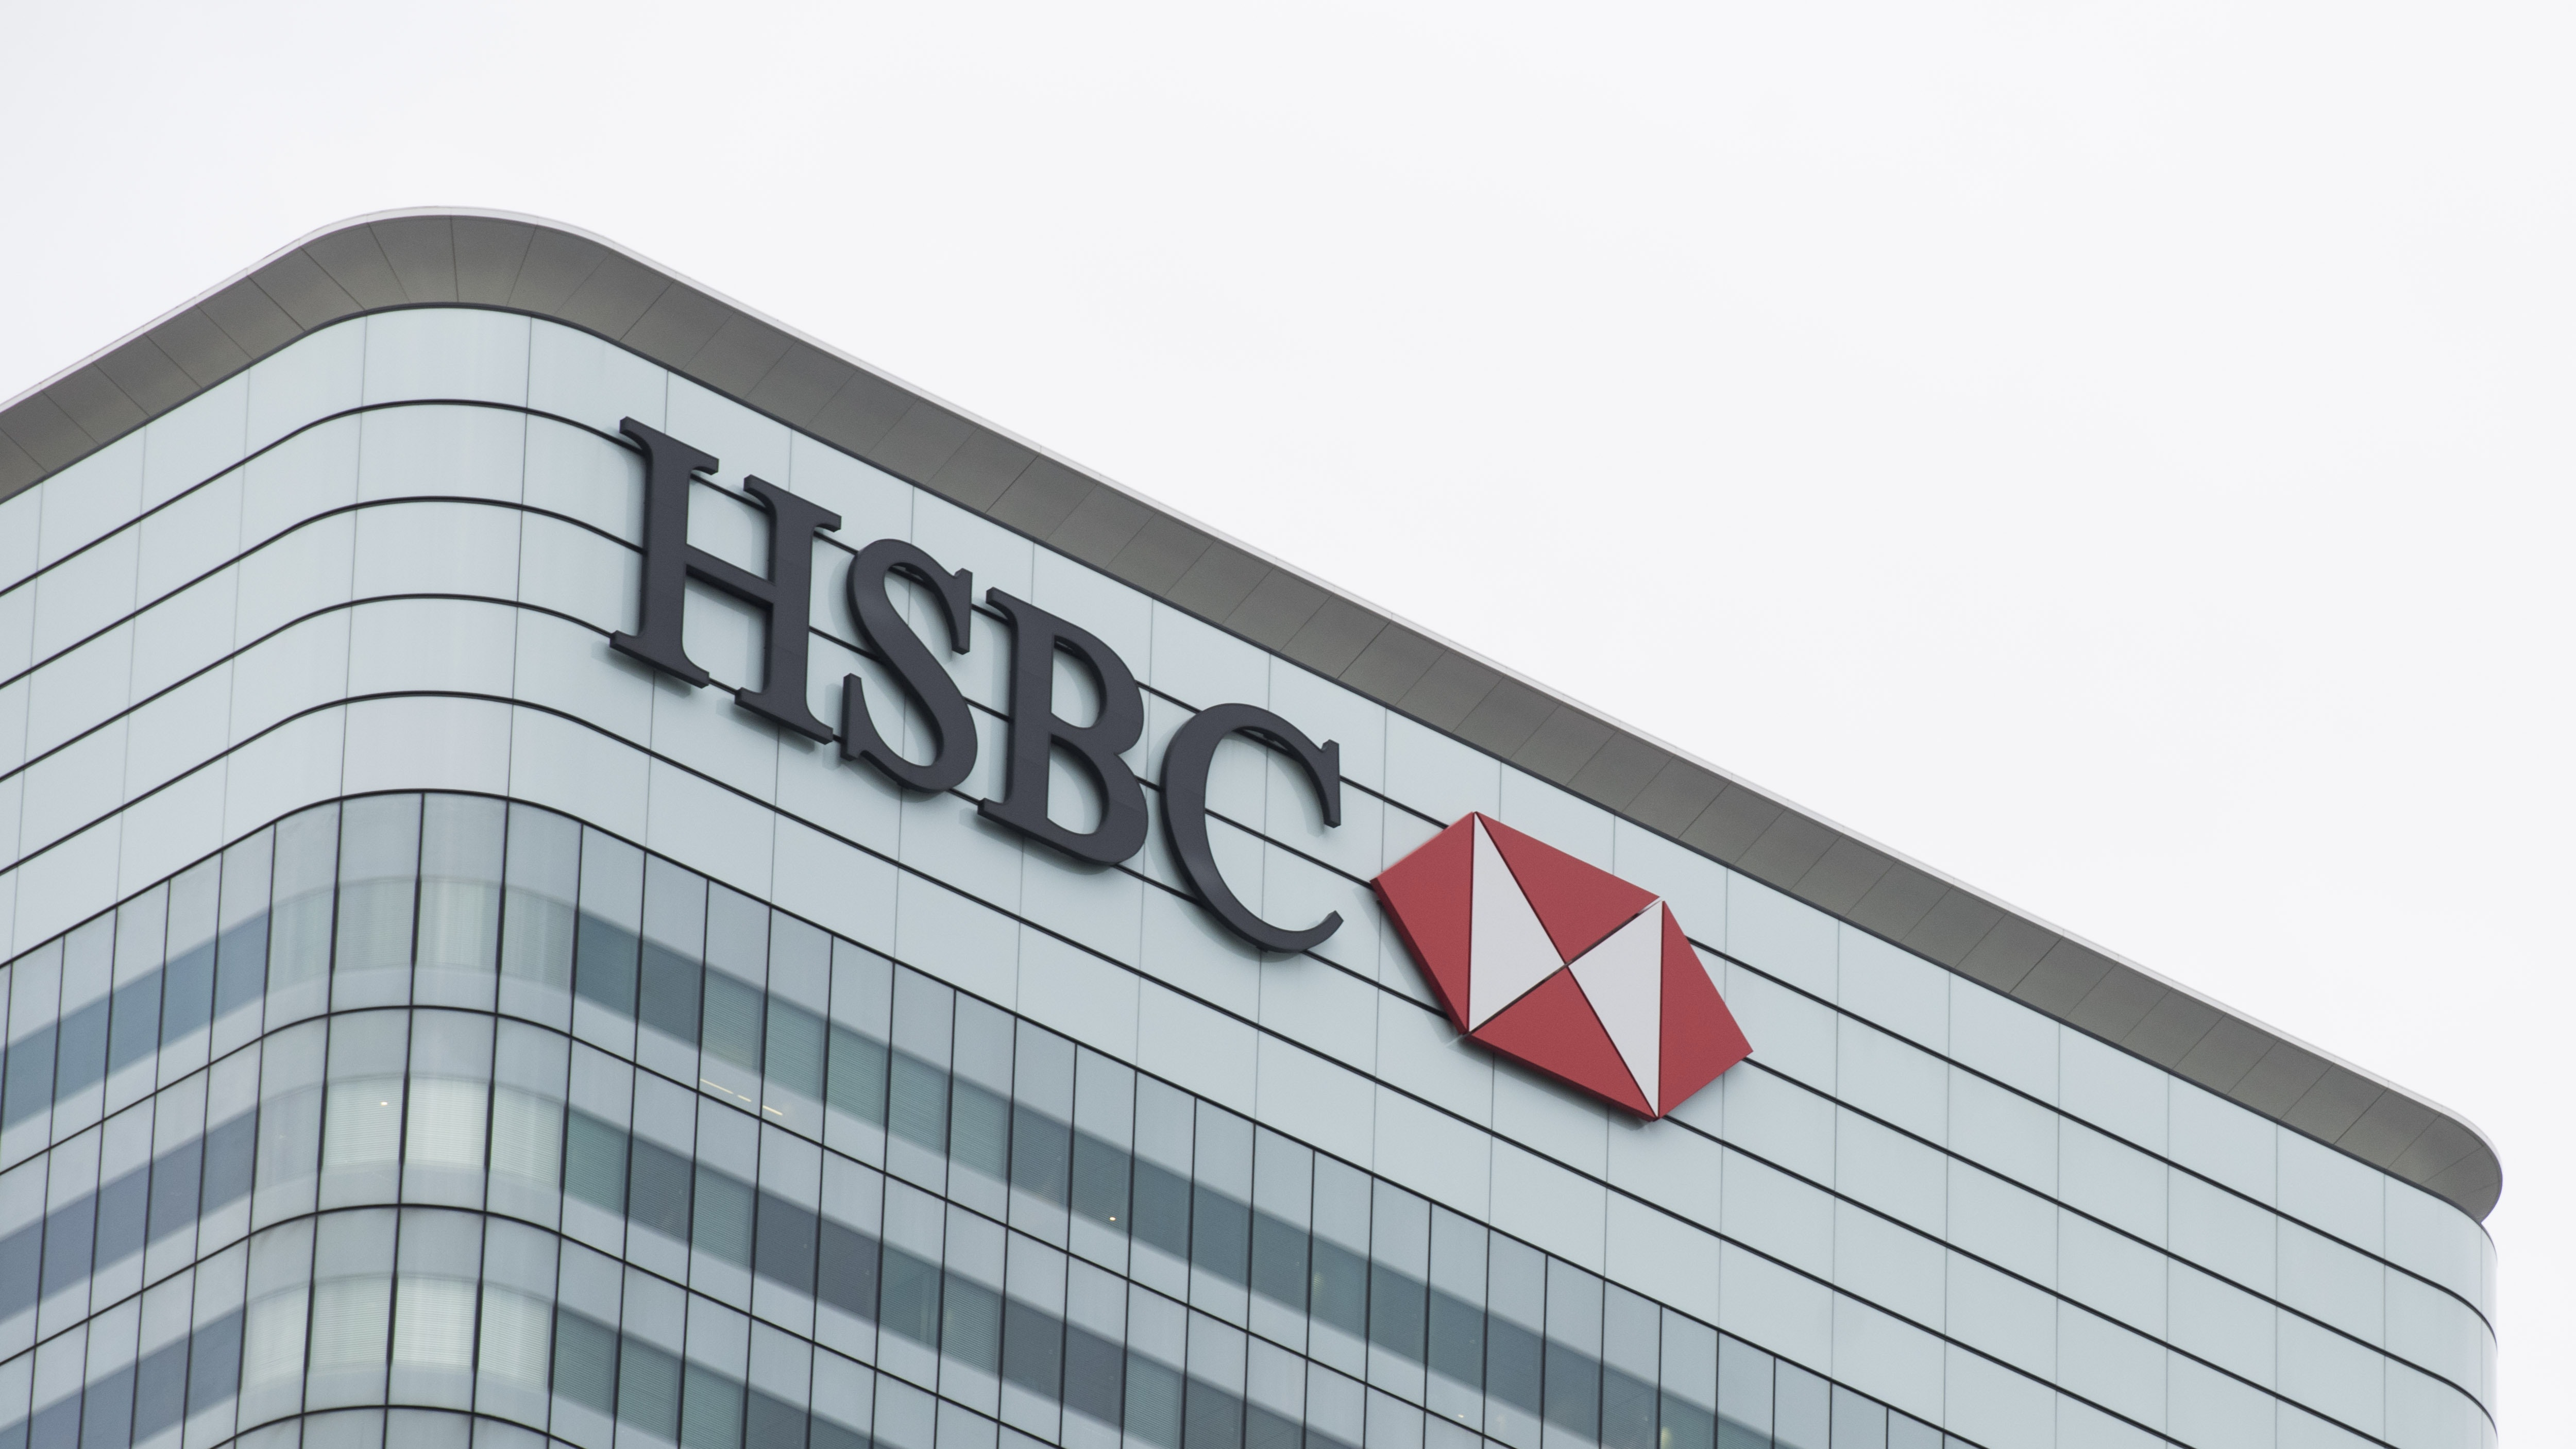 HSBC to reveal largest gender pay gap of any UK financial firm